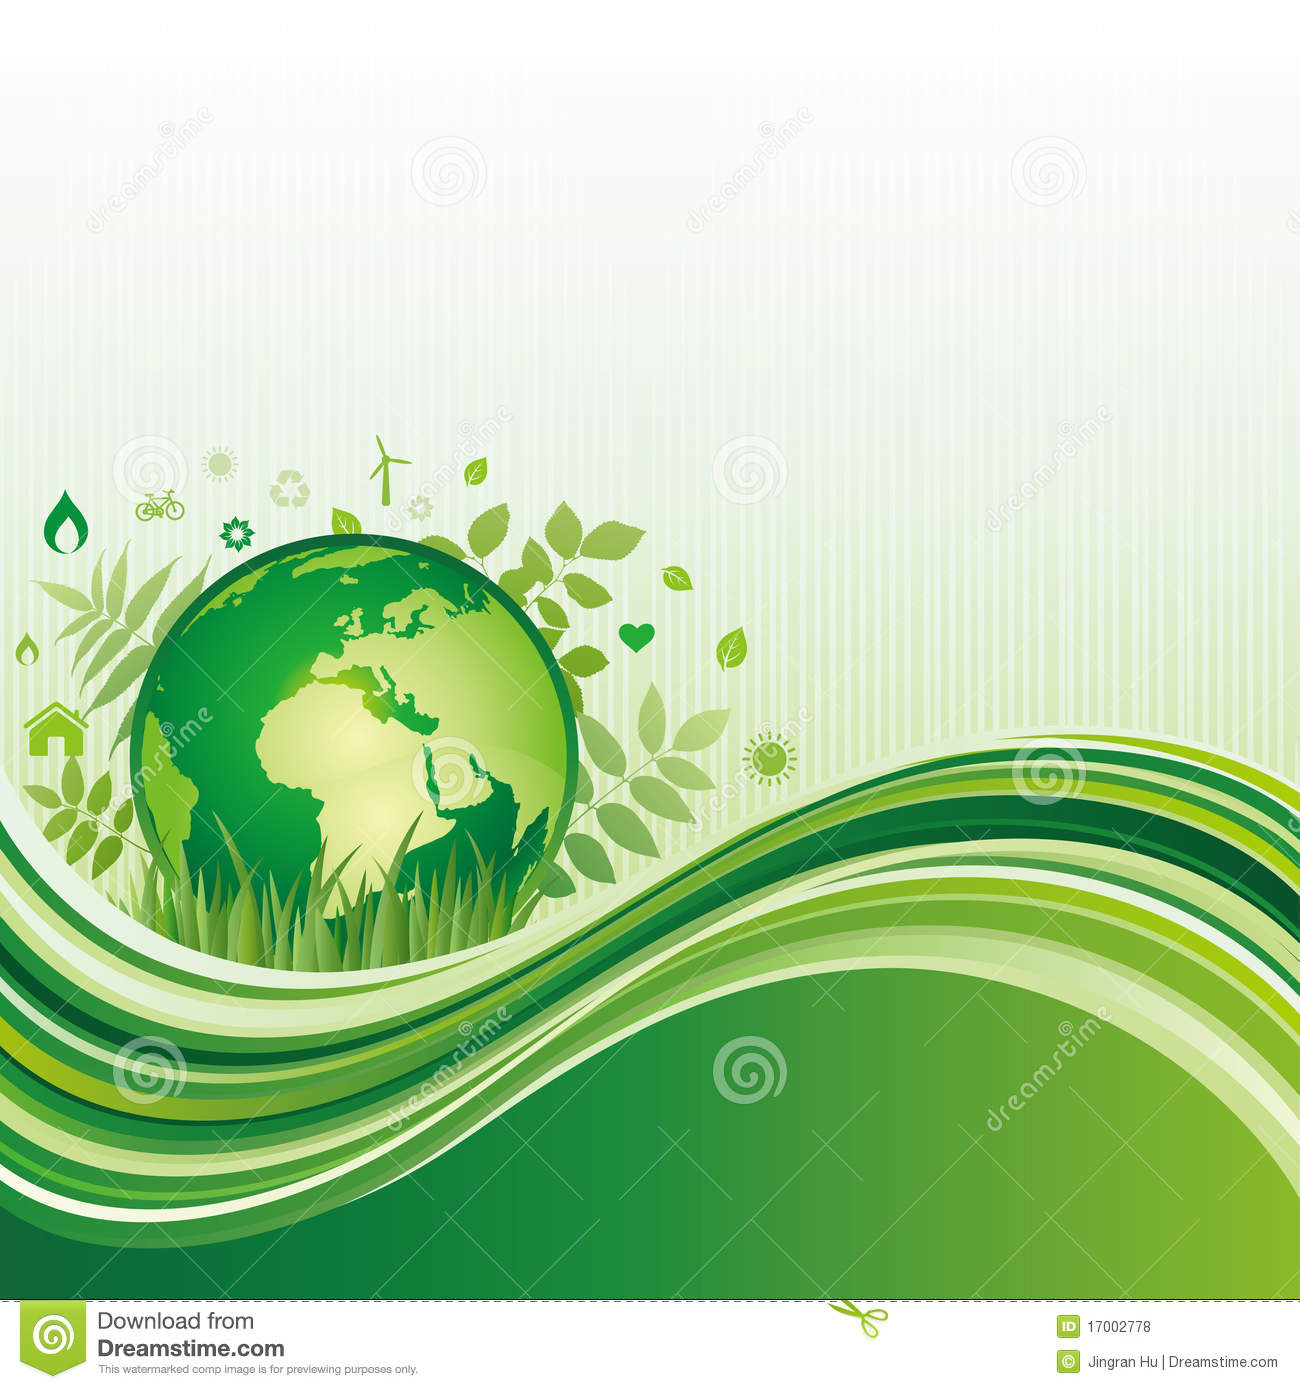 Green Environment Background Royalty Free Stock Photos - Image ... Cyber Bullying Clipart